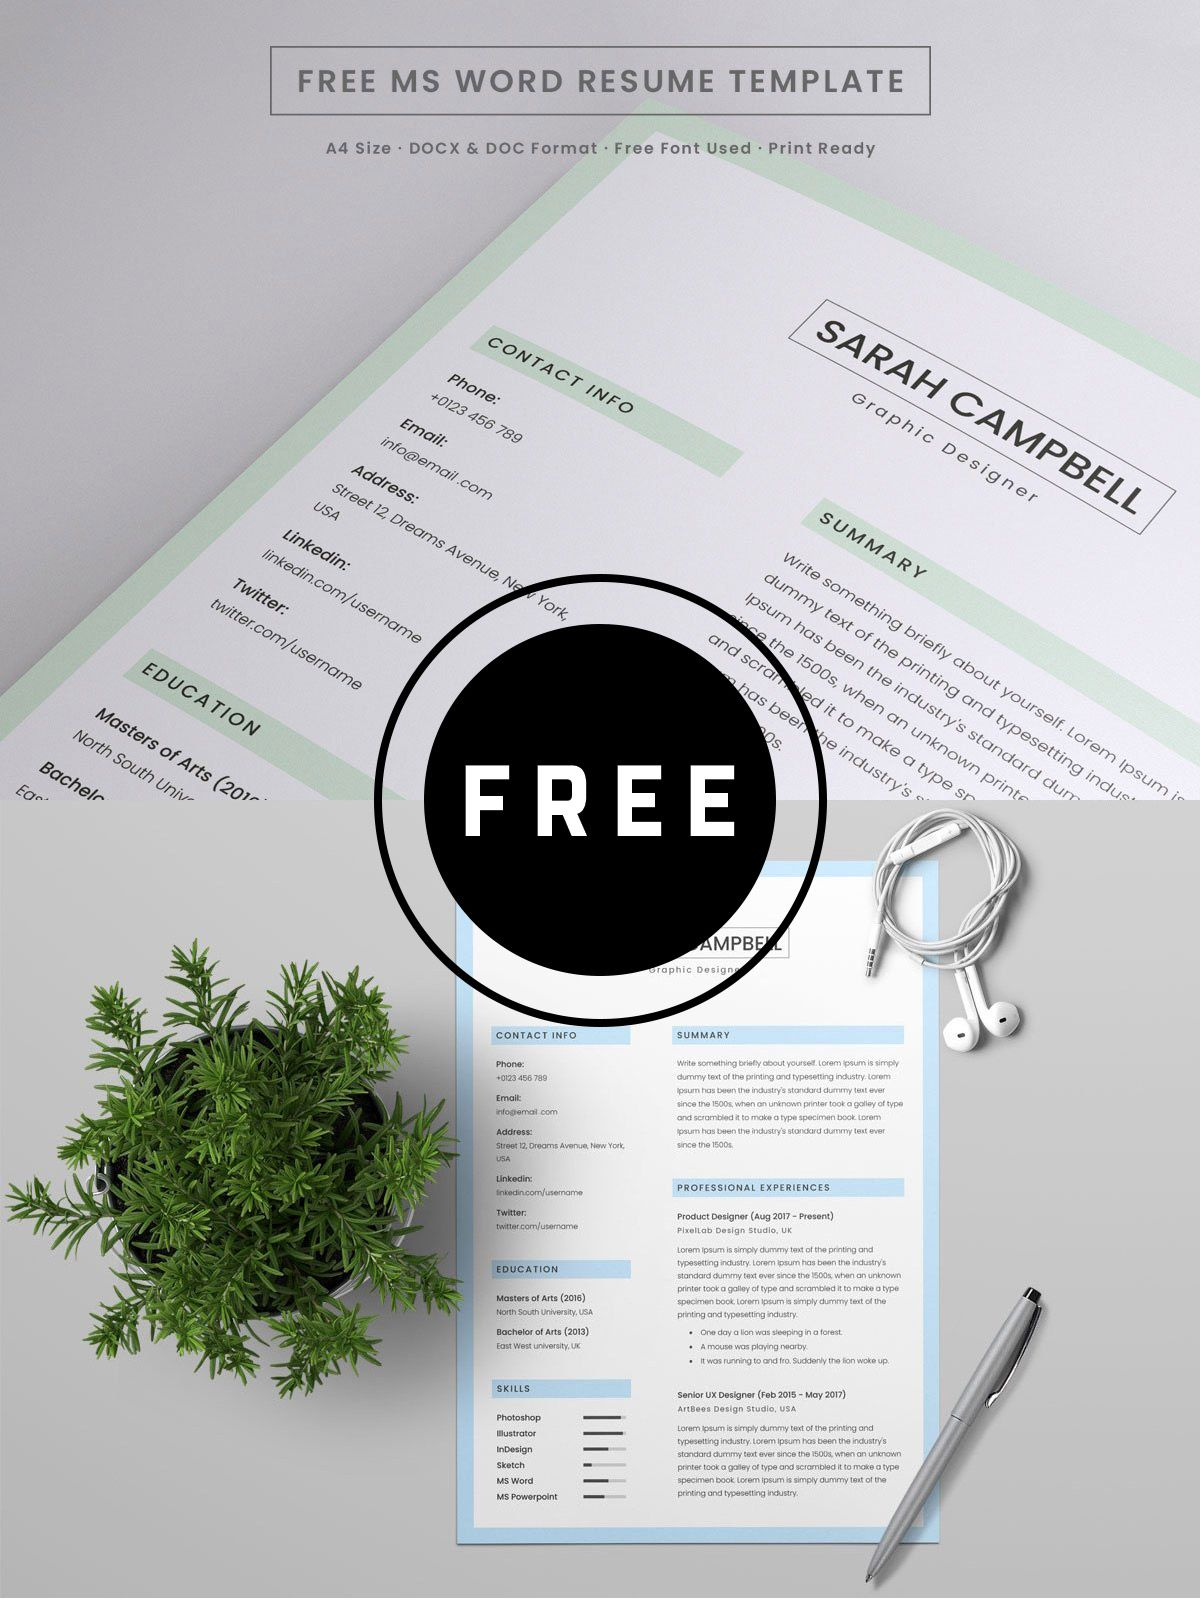 98 Awesome Free Resume Templates for 2019 Microsoft word